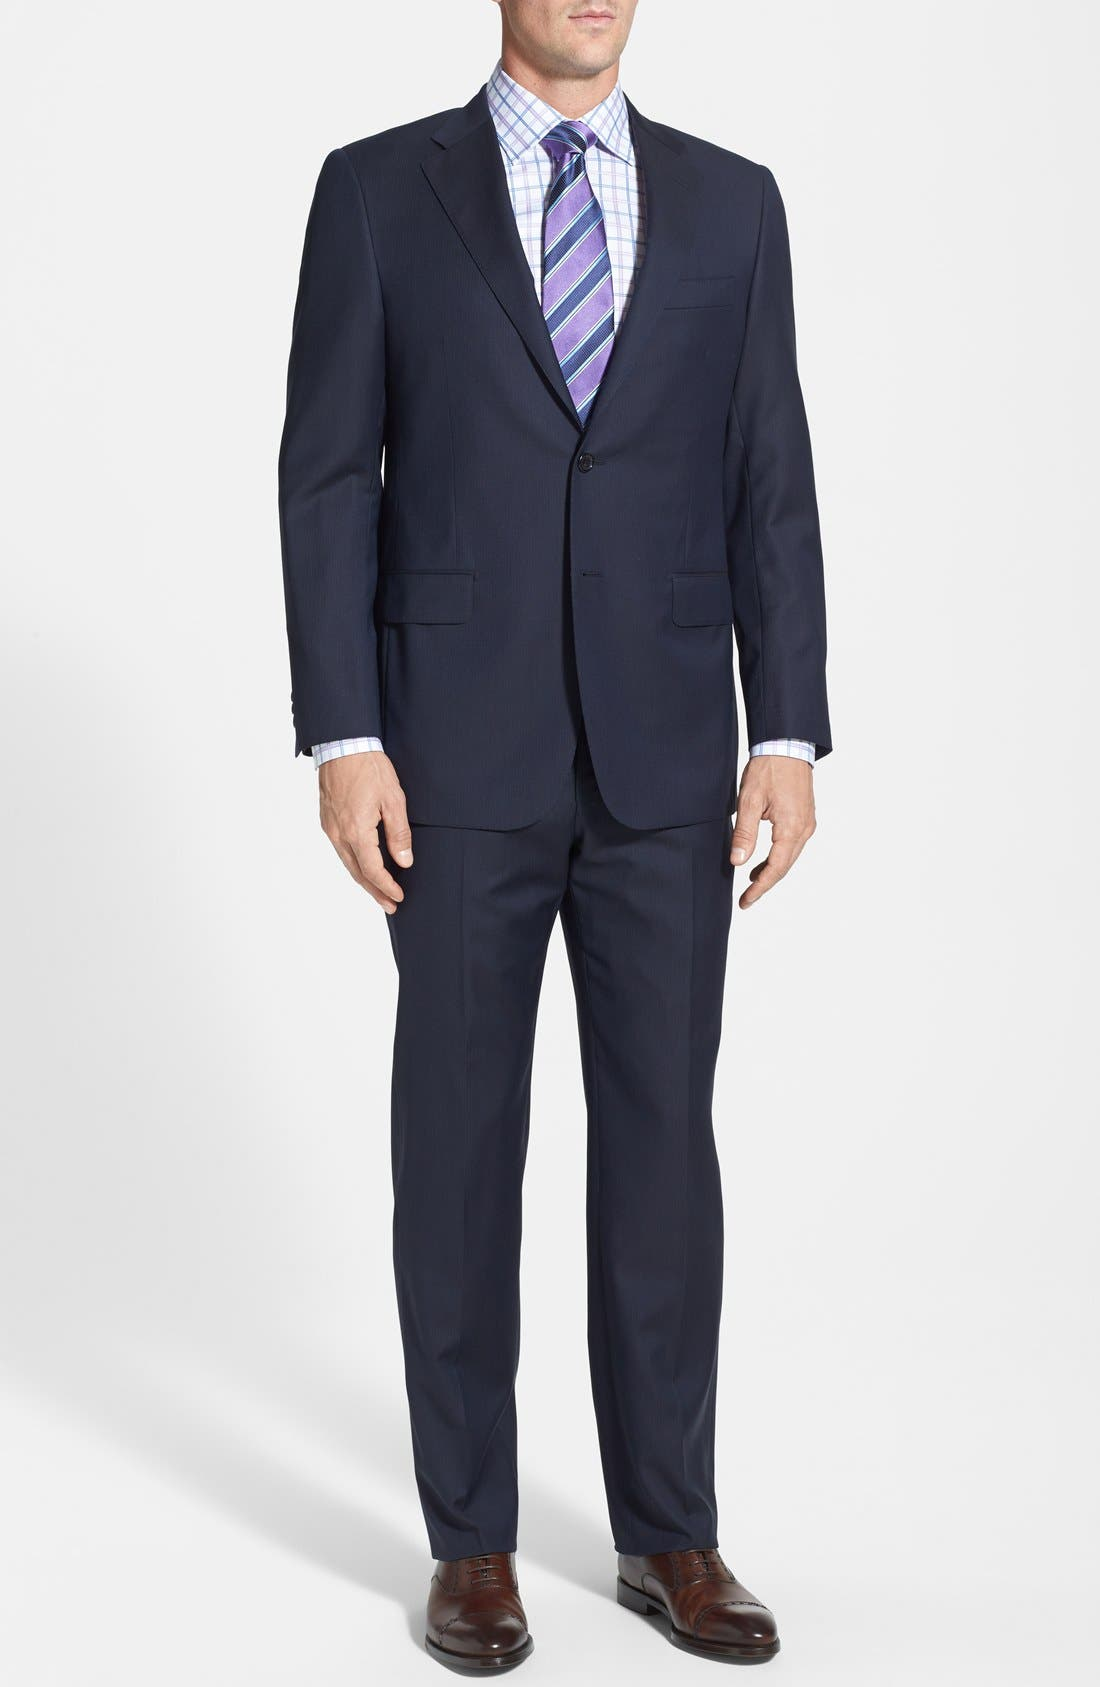 Alternate Image 1 Selected - Hickey Freeman Classic Fit Navy Stripe Suit